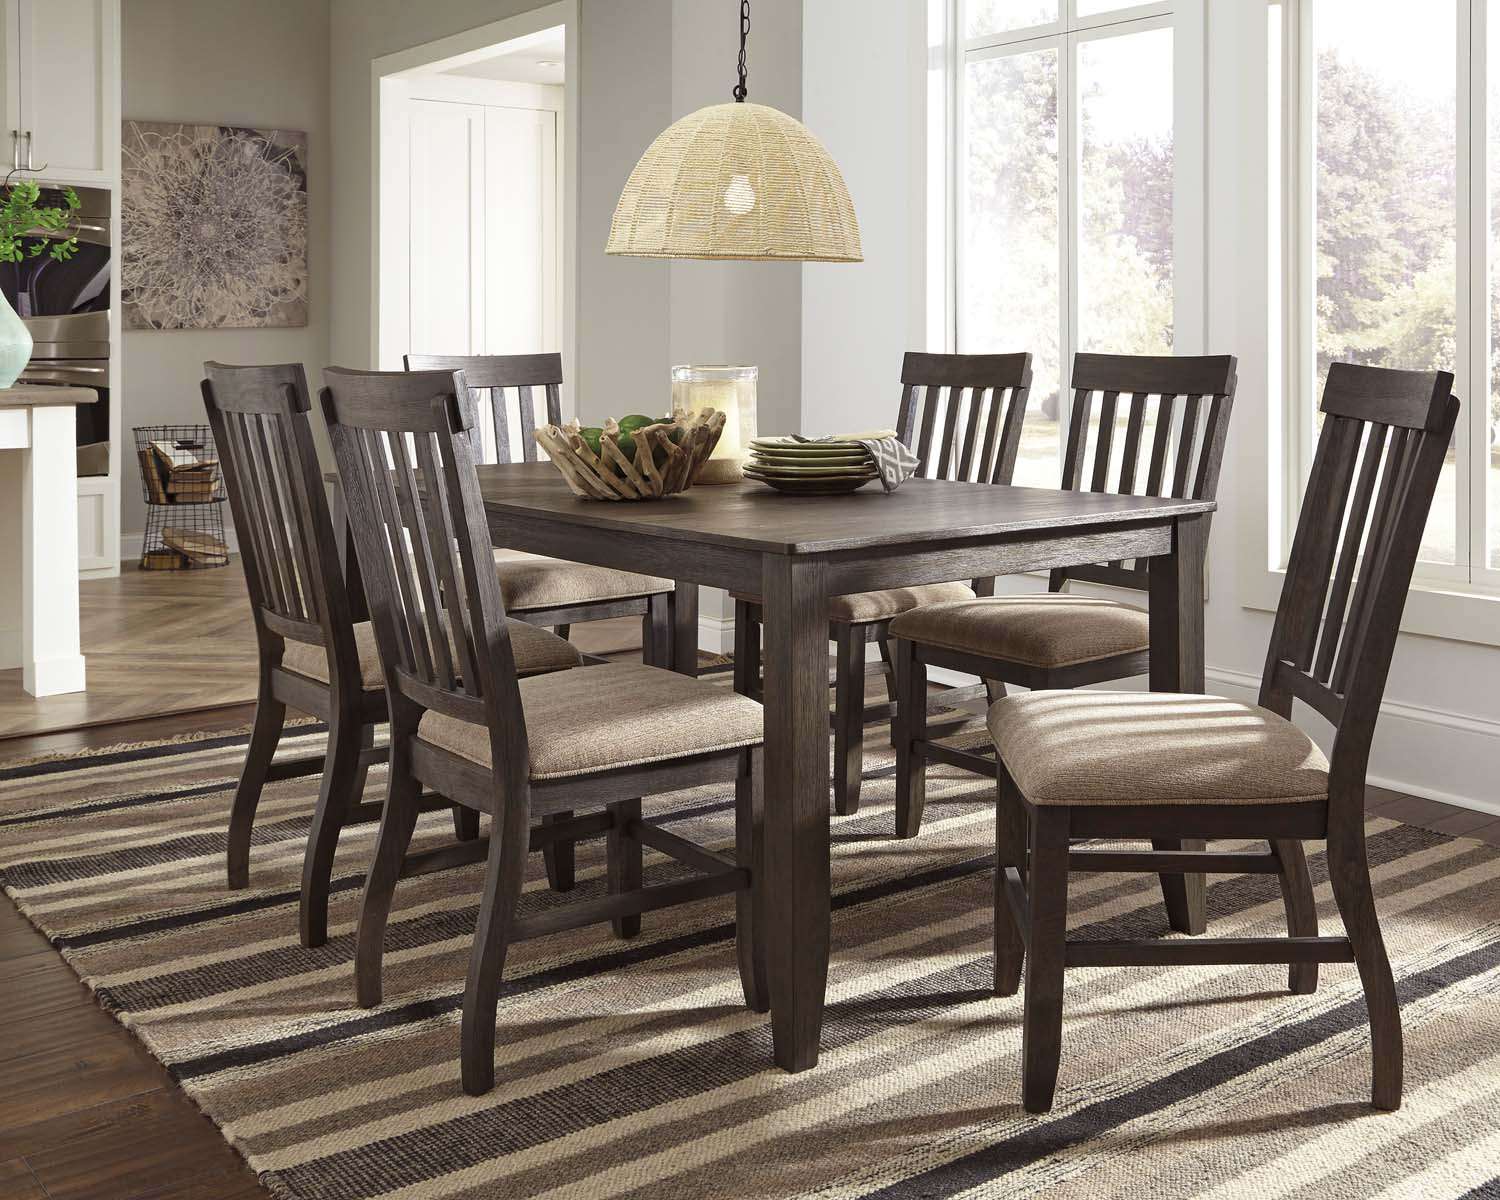 Dresbar   Grayish Brown 7 Piece Dining Room Set